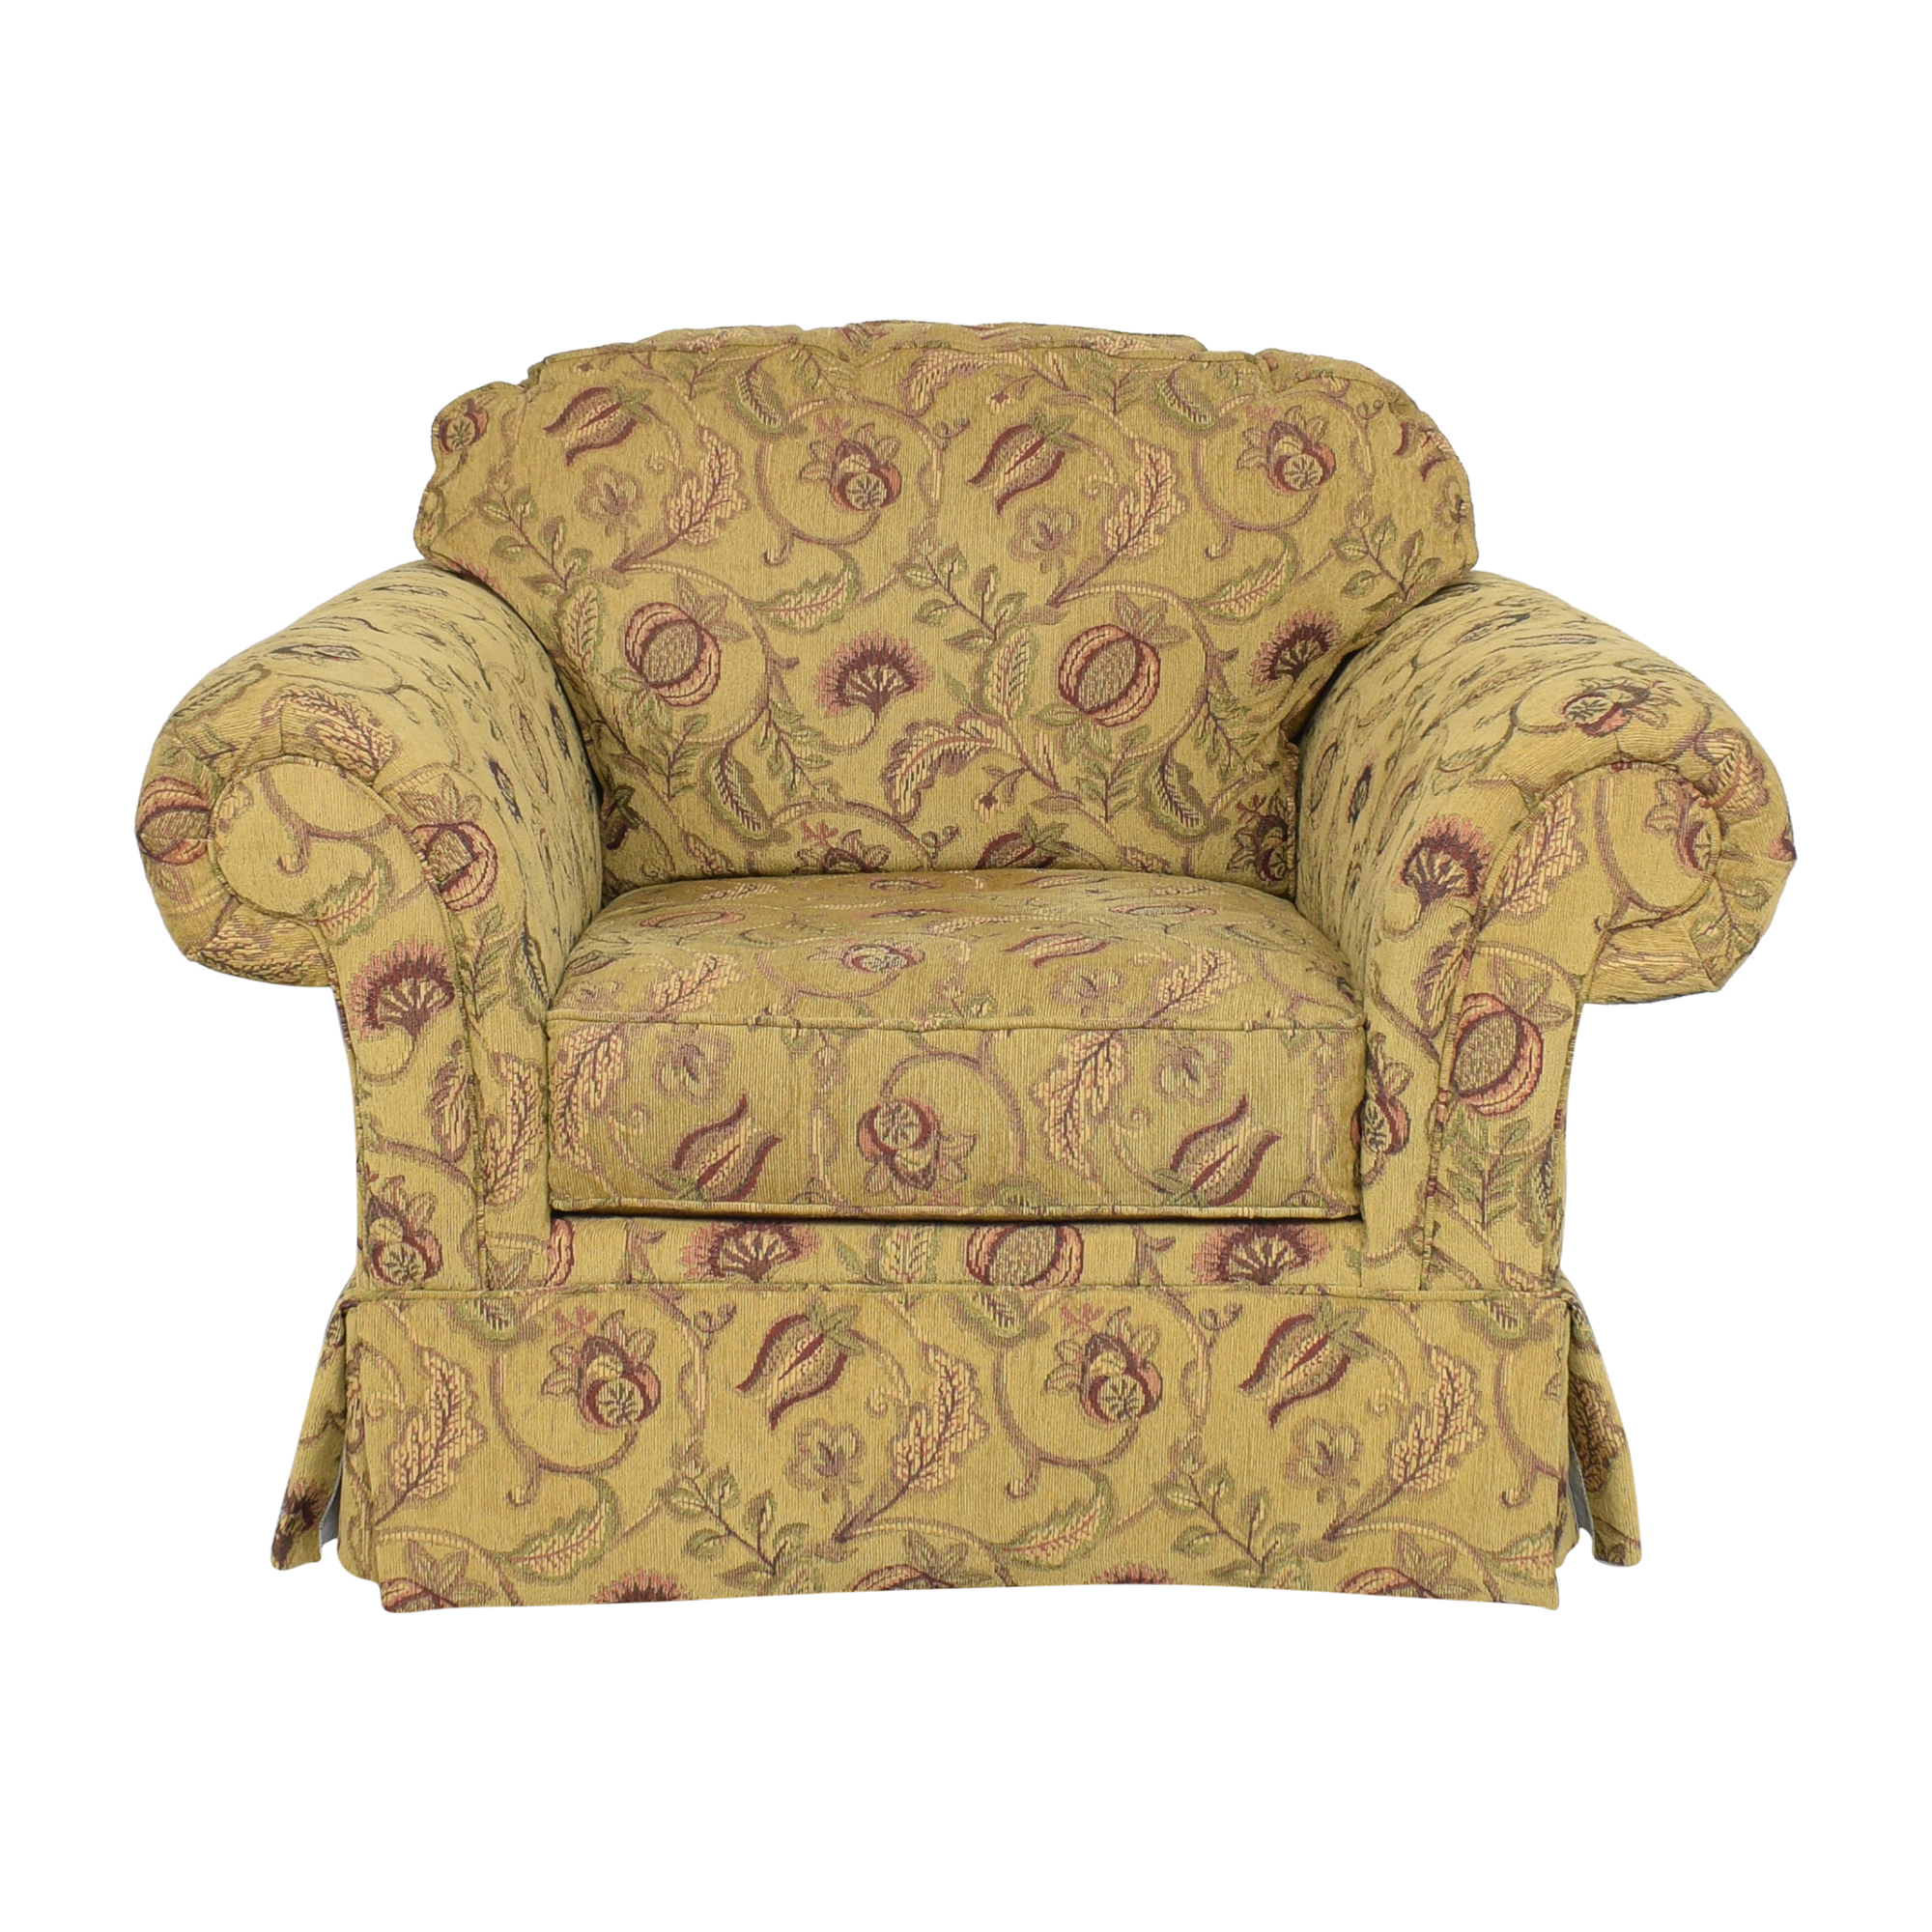 Broyhill Furniture Broyhill Furniture Roll Arm Chair with Ottoman second hand